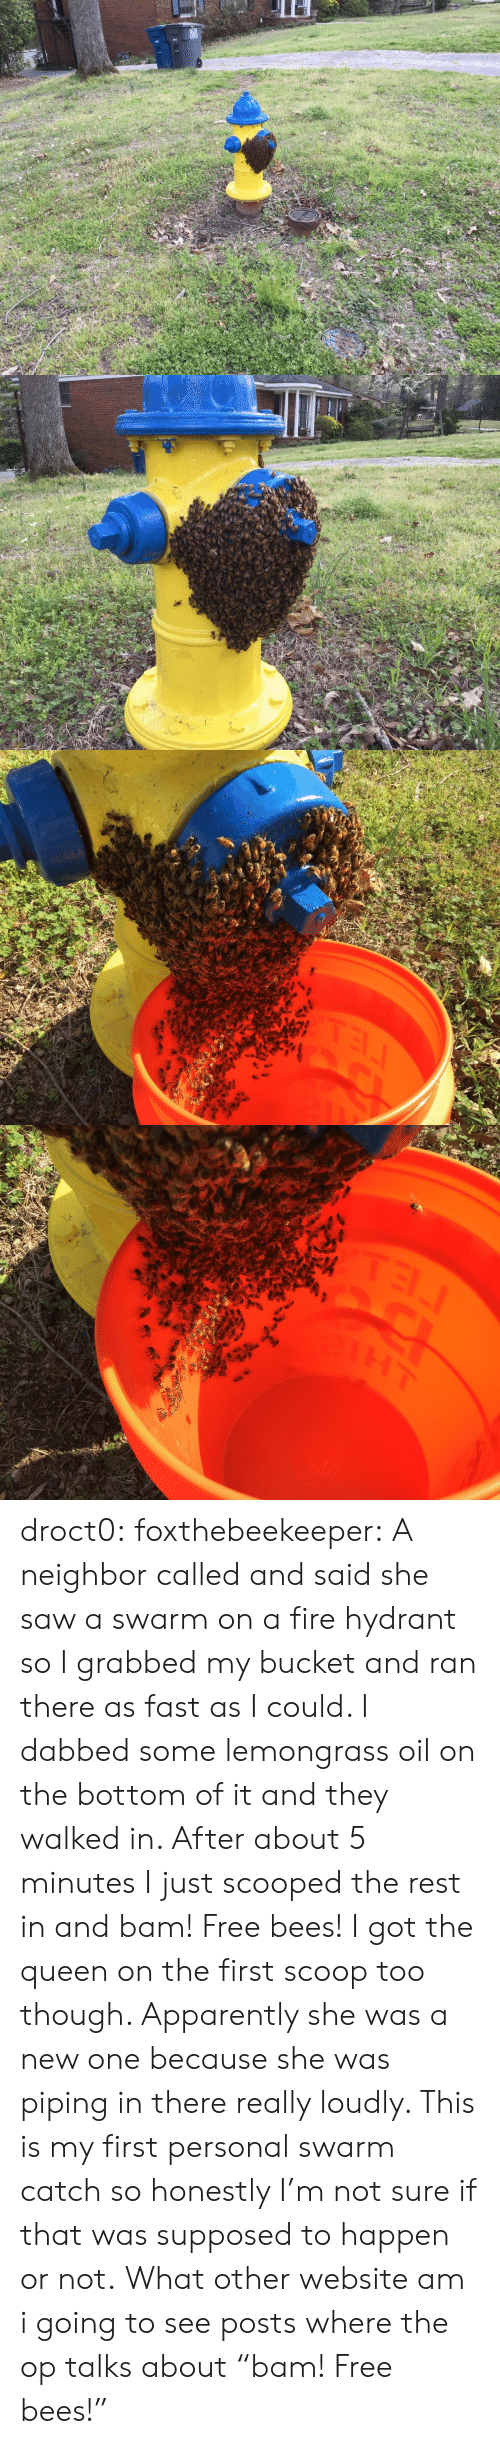 """Apparently, Fire, and Saw: TEL droct0: foxthebeekeeper:  A neighbor called and said she saw a swarm on a fire hydrant so I grabbed my bucket and ran there as fast as I could. I dabbed some lemongrass oil on the bottom of it and they walked in. After about 5 minutes I just scooped the rest in and bam! Free bees!  I got the queen on the first scoop too though. Apparently she was a new one because she was piping in there really loudly. This is my first personal swarm catch so honestly I'm not sure if that was supposed to happen or not.   What other website am i going to see posts where the op talks about """"bam! Free bees!"""""""